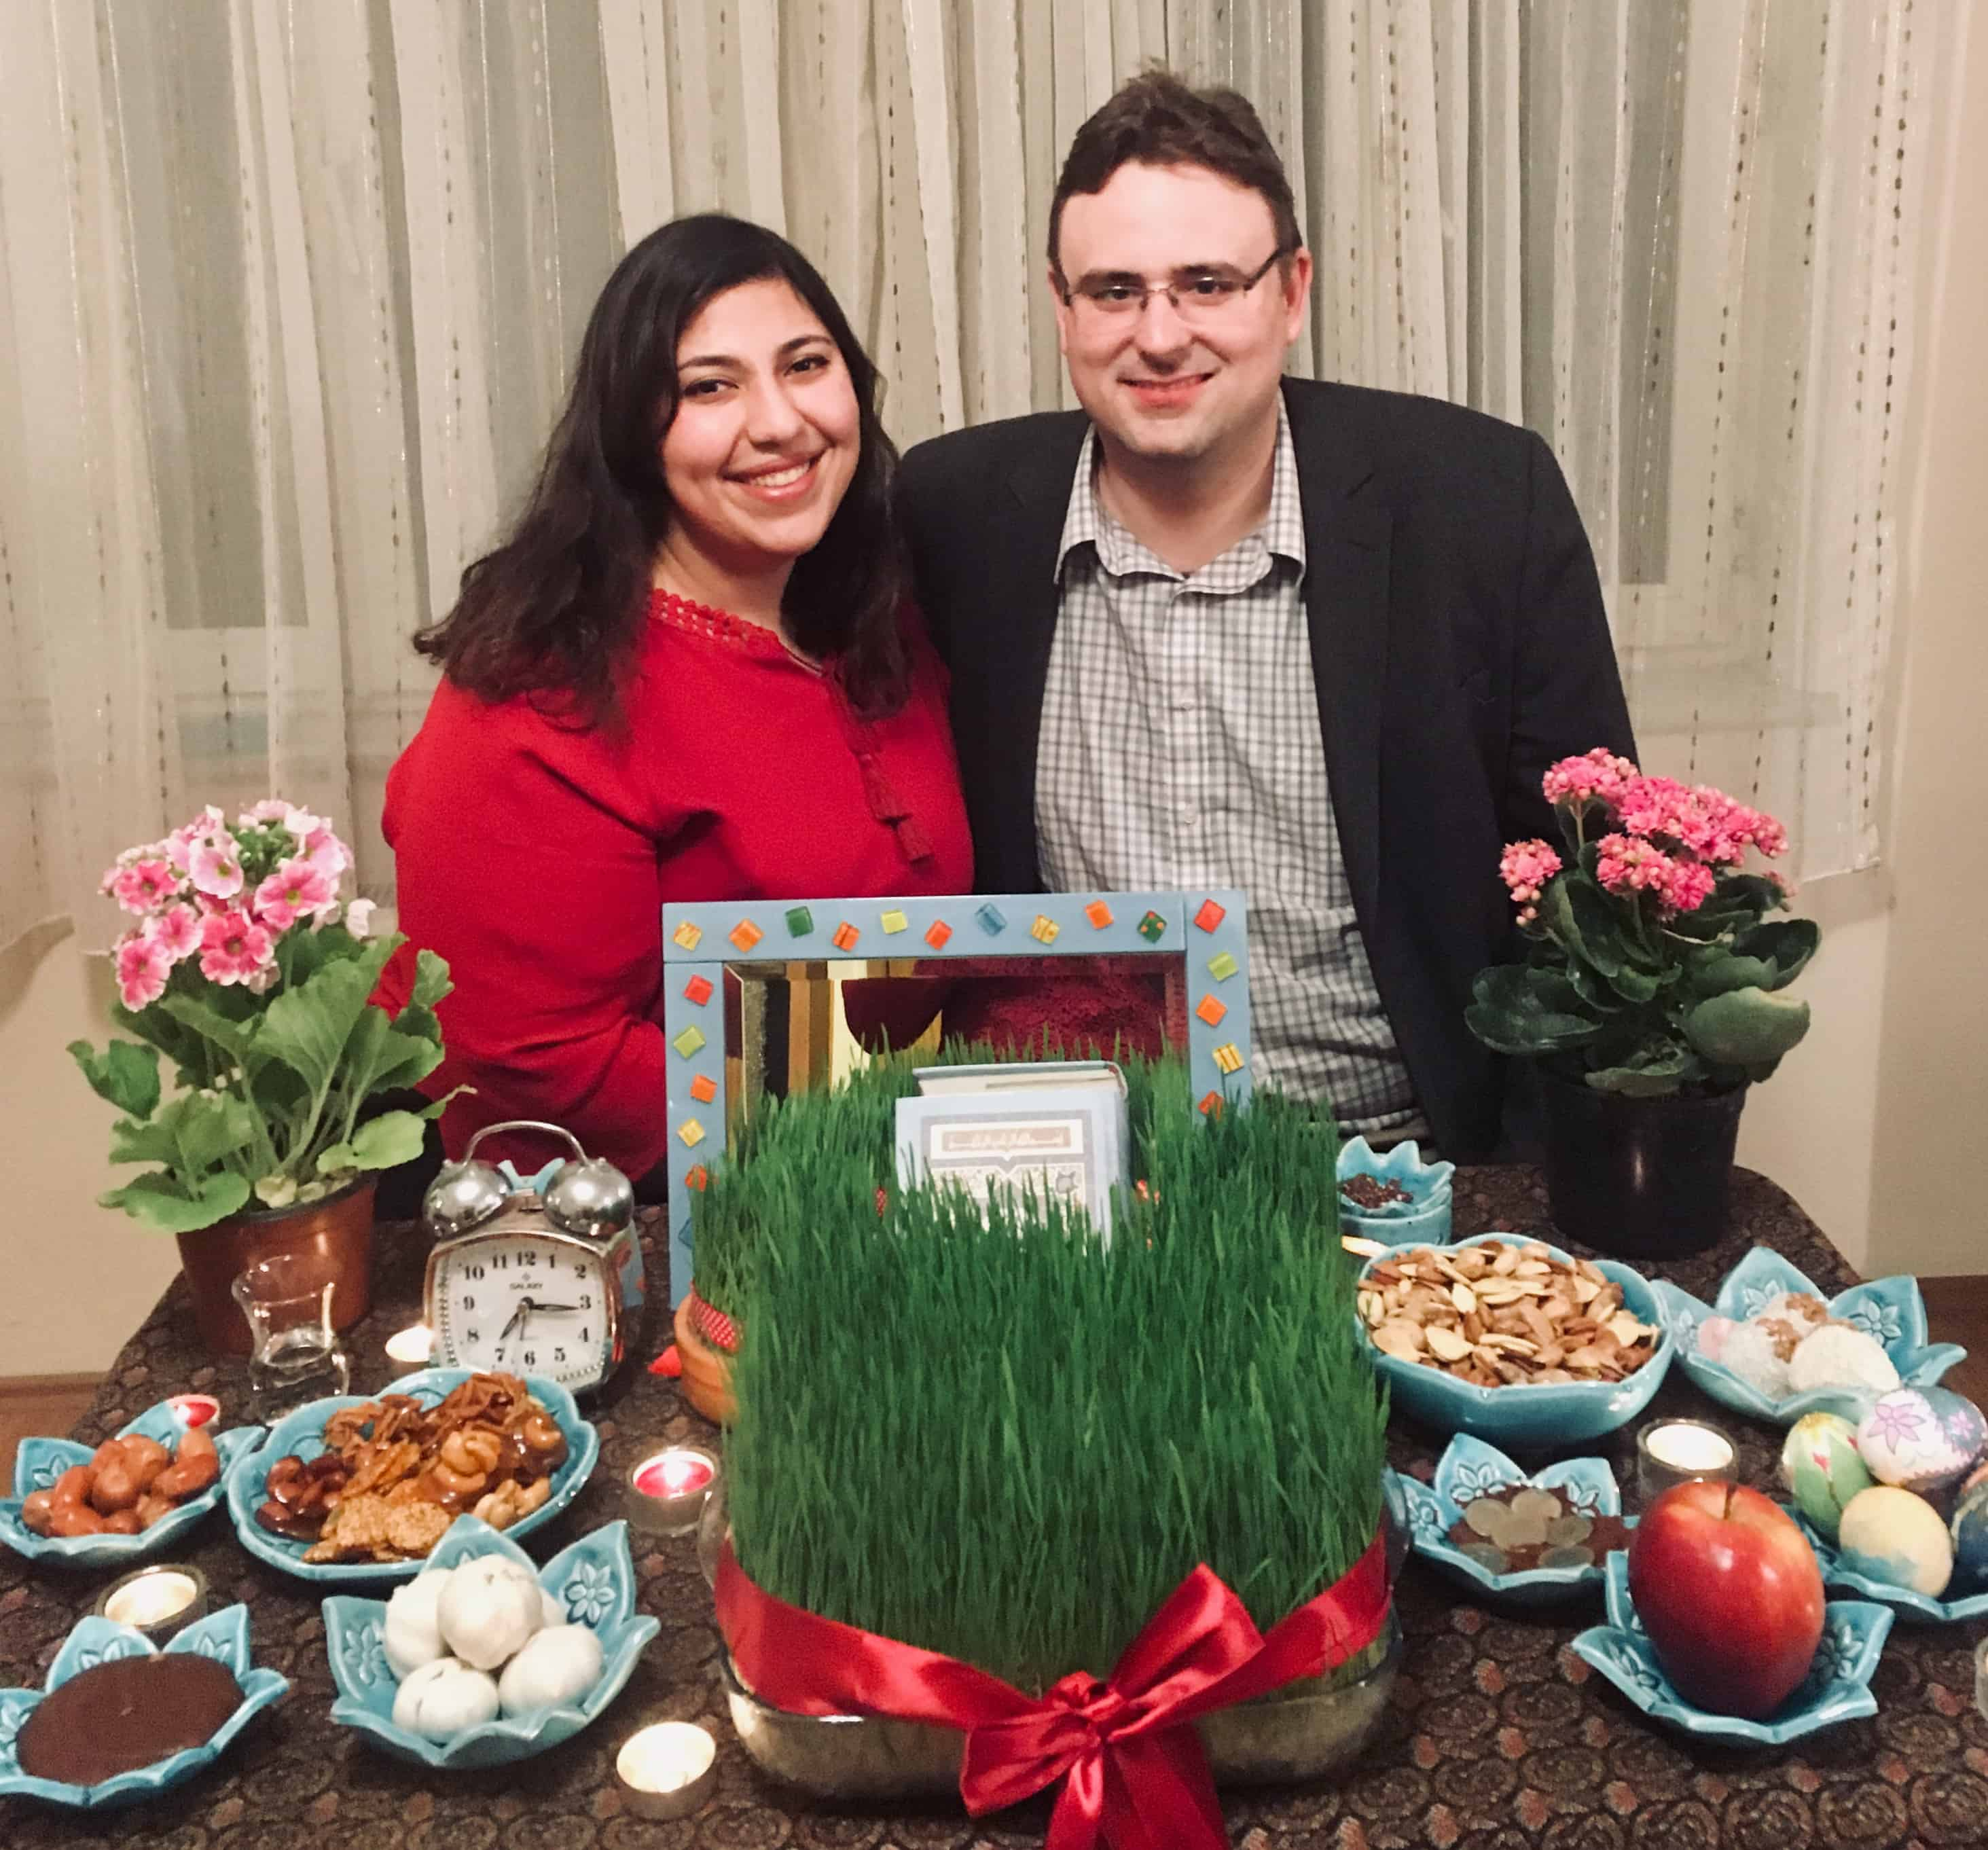 Families gather and set a table for nowruz.